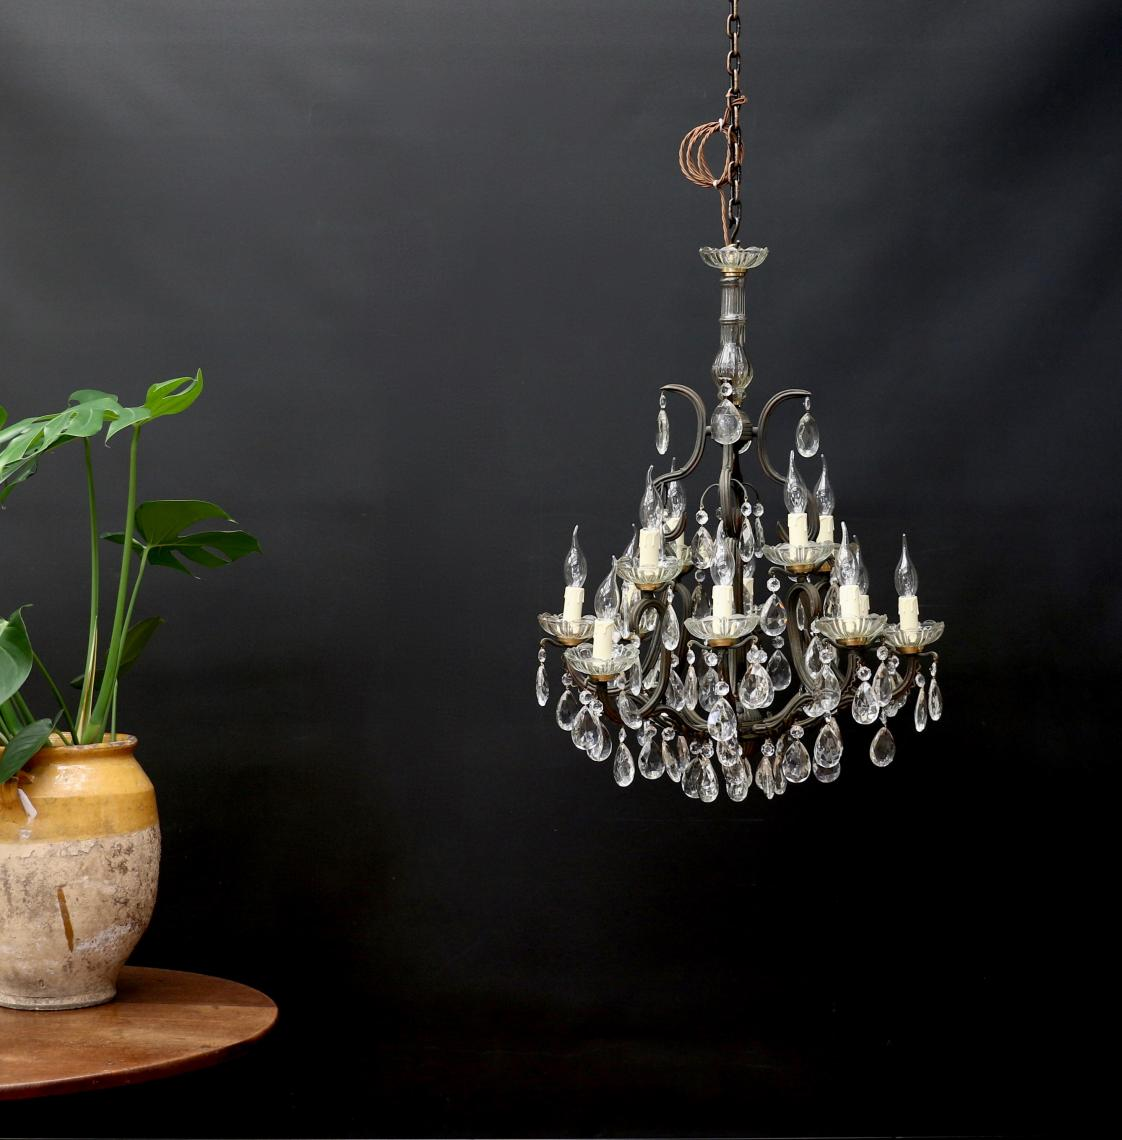 12 Light Chandelier